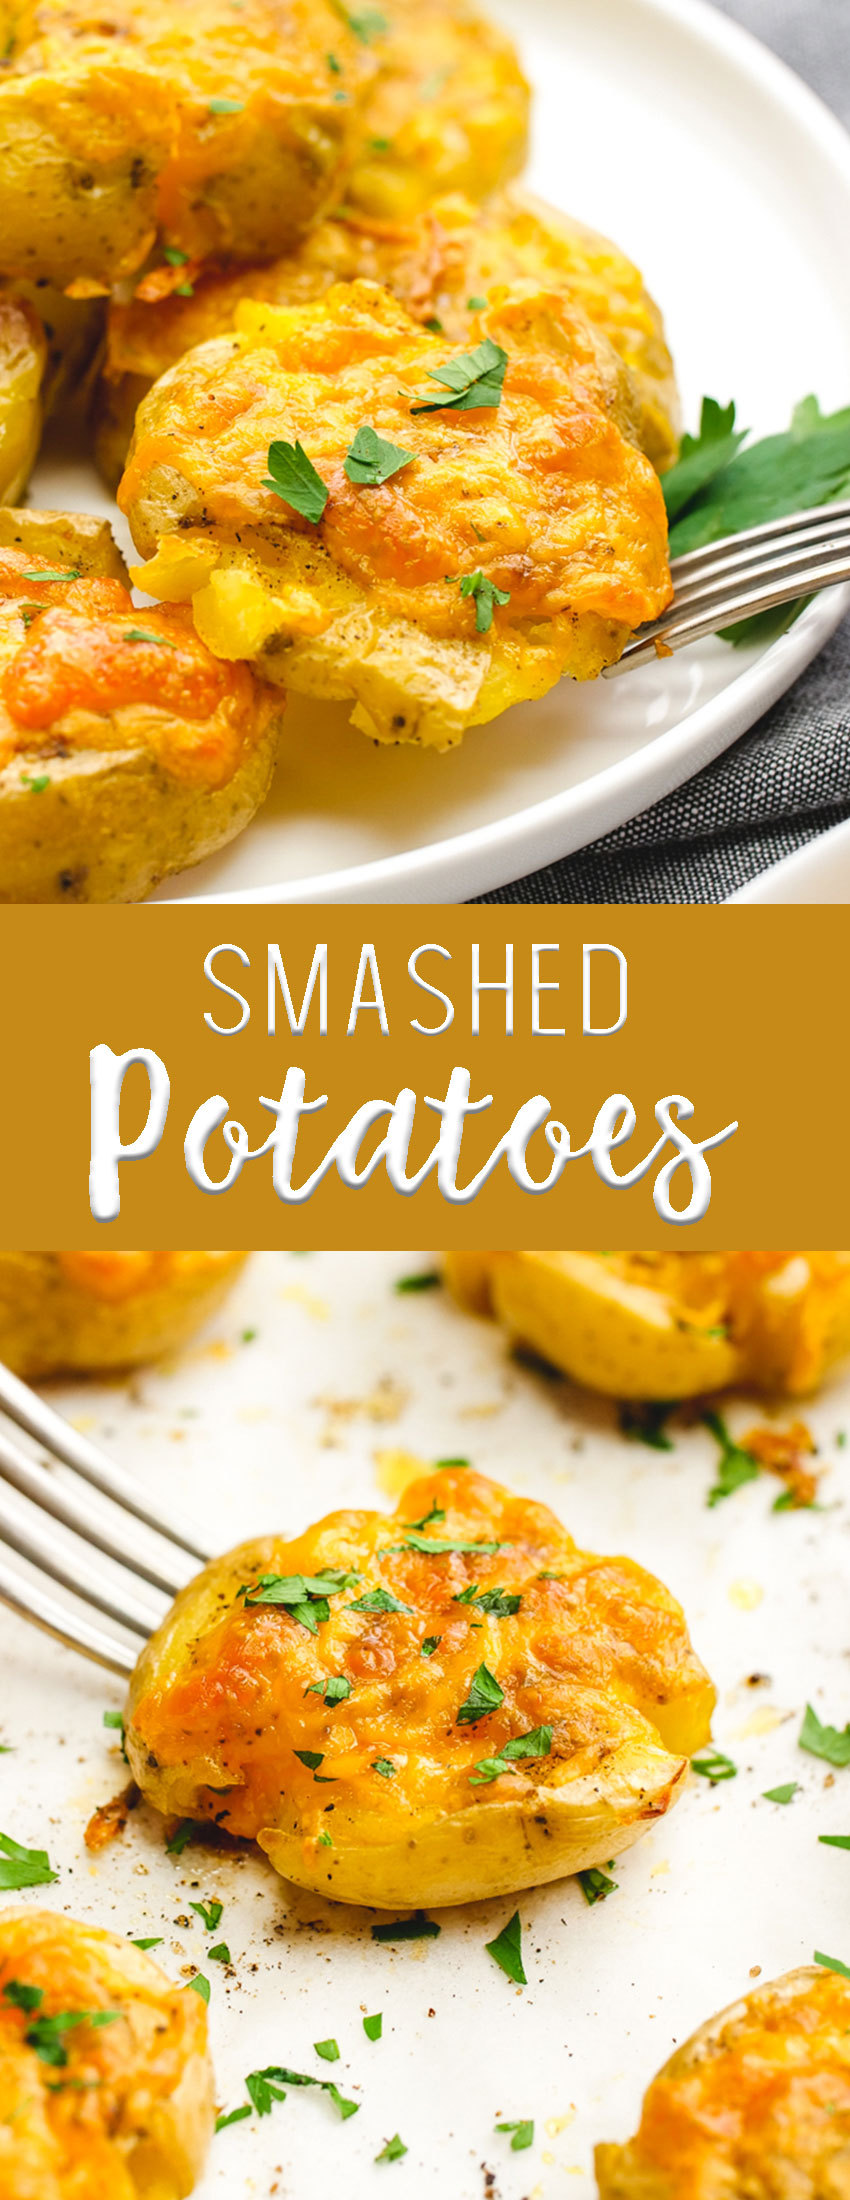 Easy to make Smashed Potatoes are slathered in butter, herbs, spices, and cheese and make a fantastic appetizer or snack.